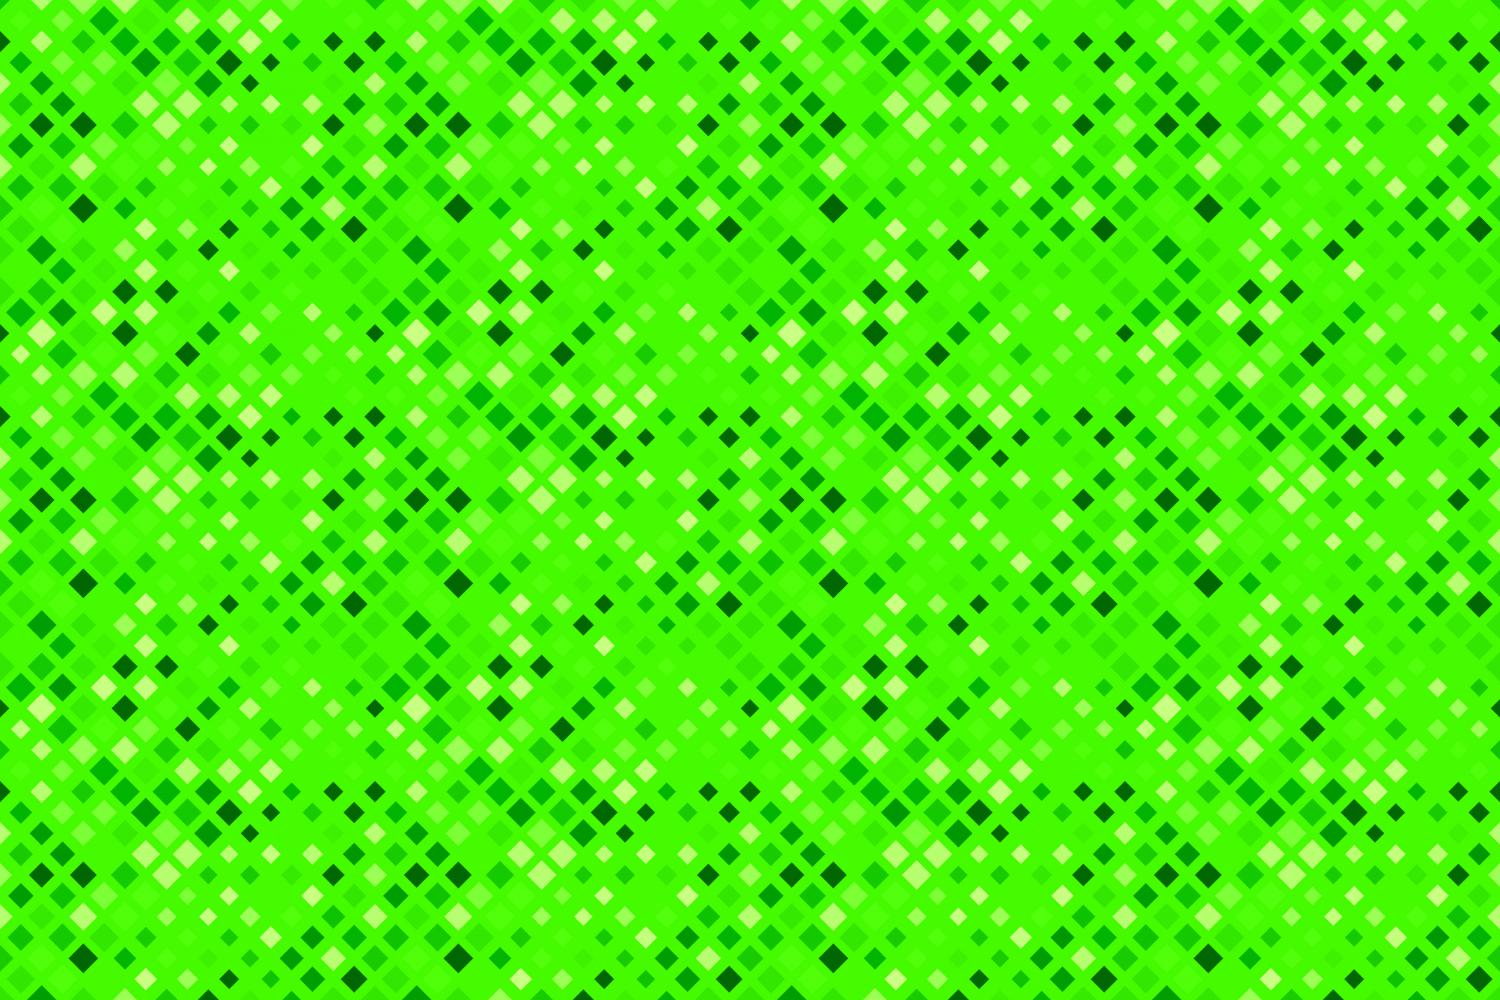 24 Seamless Green Square Patterns example image 20